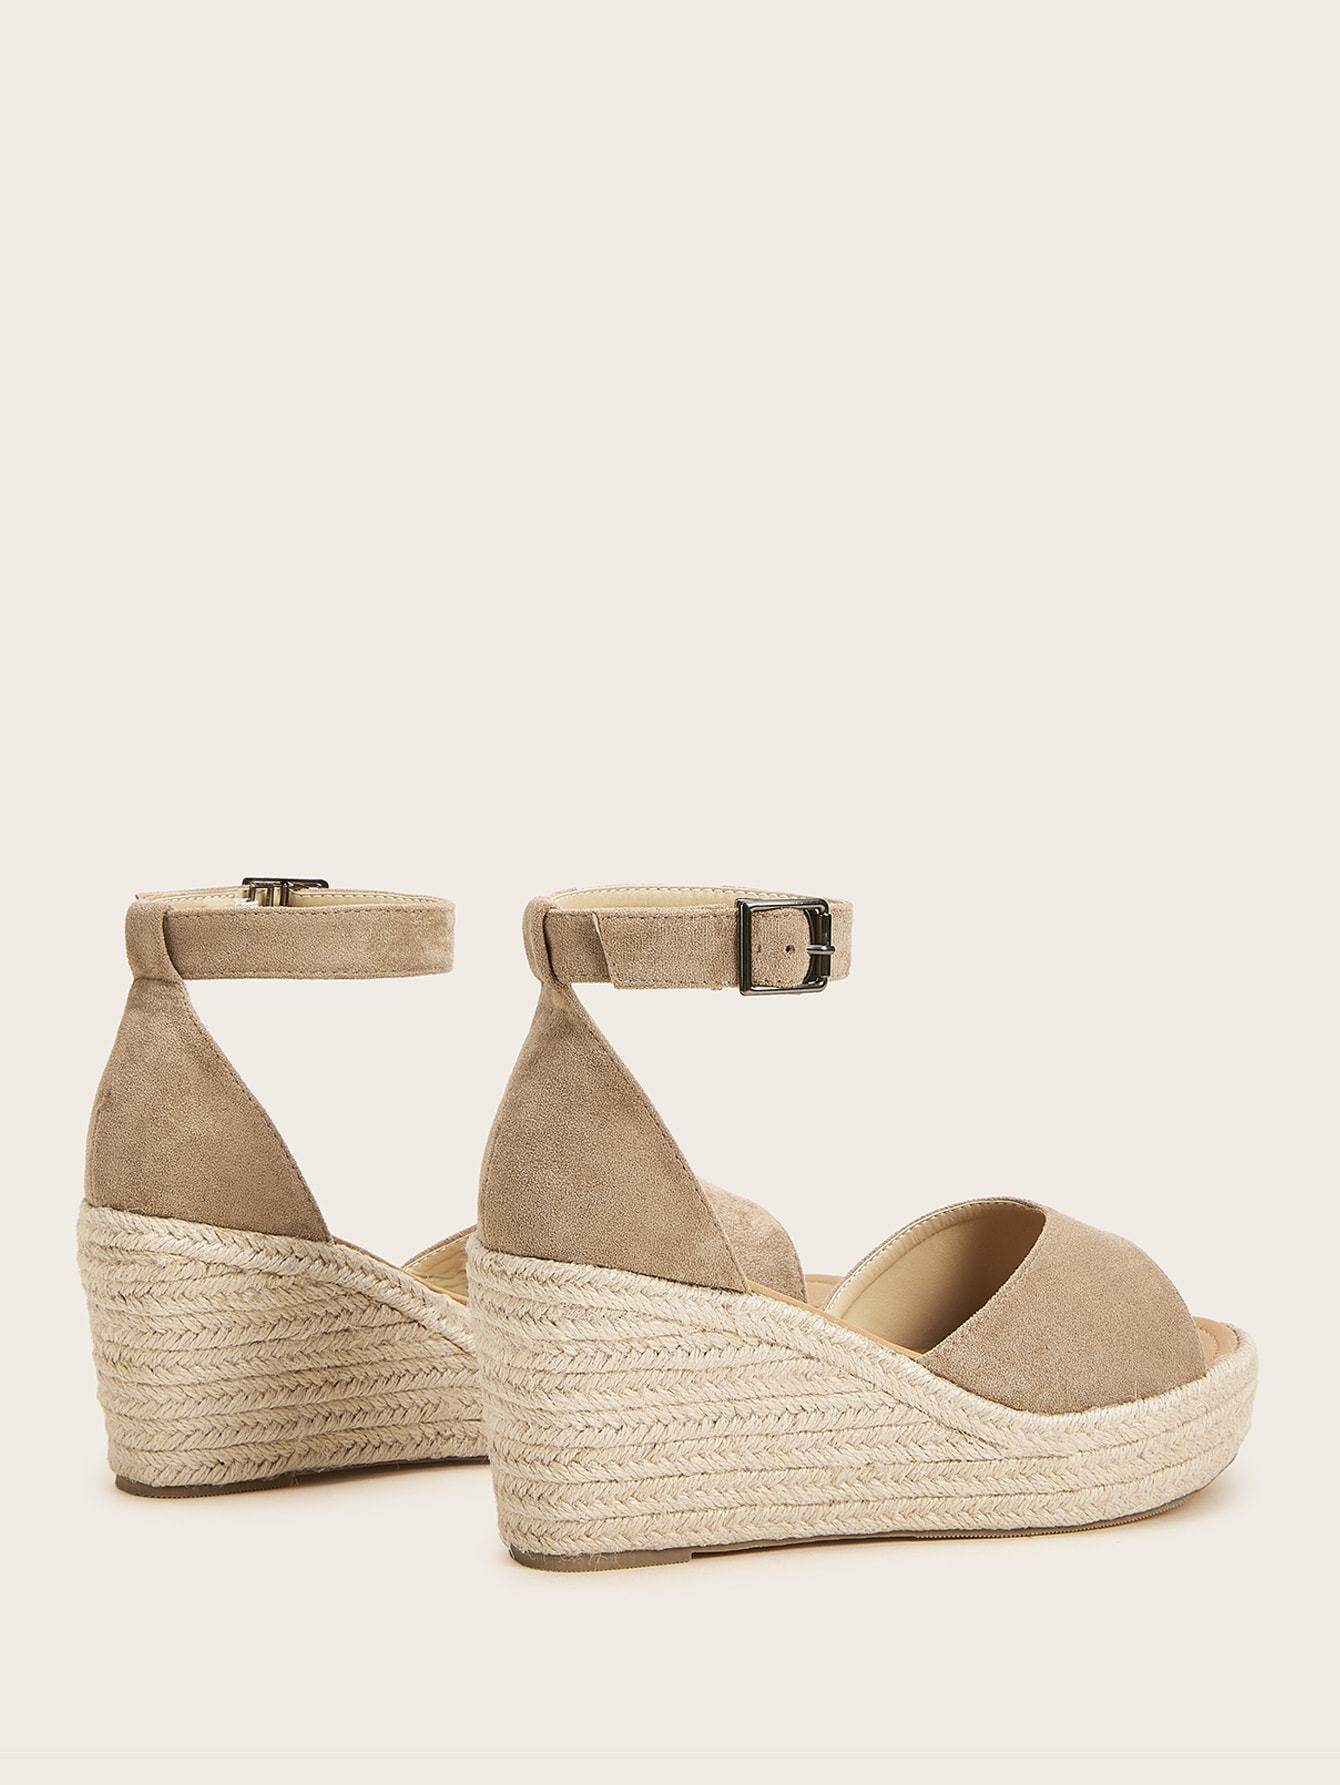 Ankle Strap Suede Espadrille Wedges